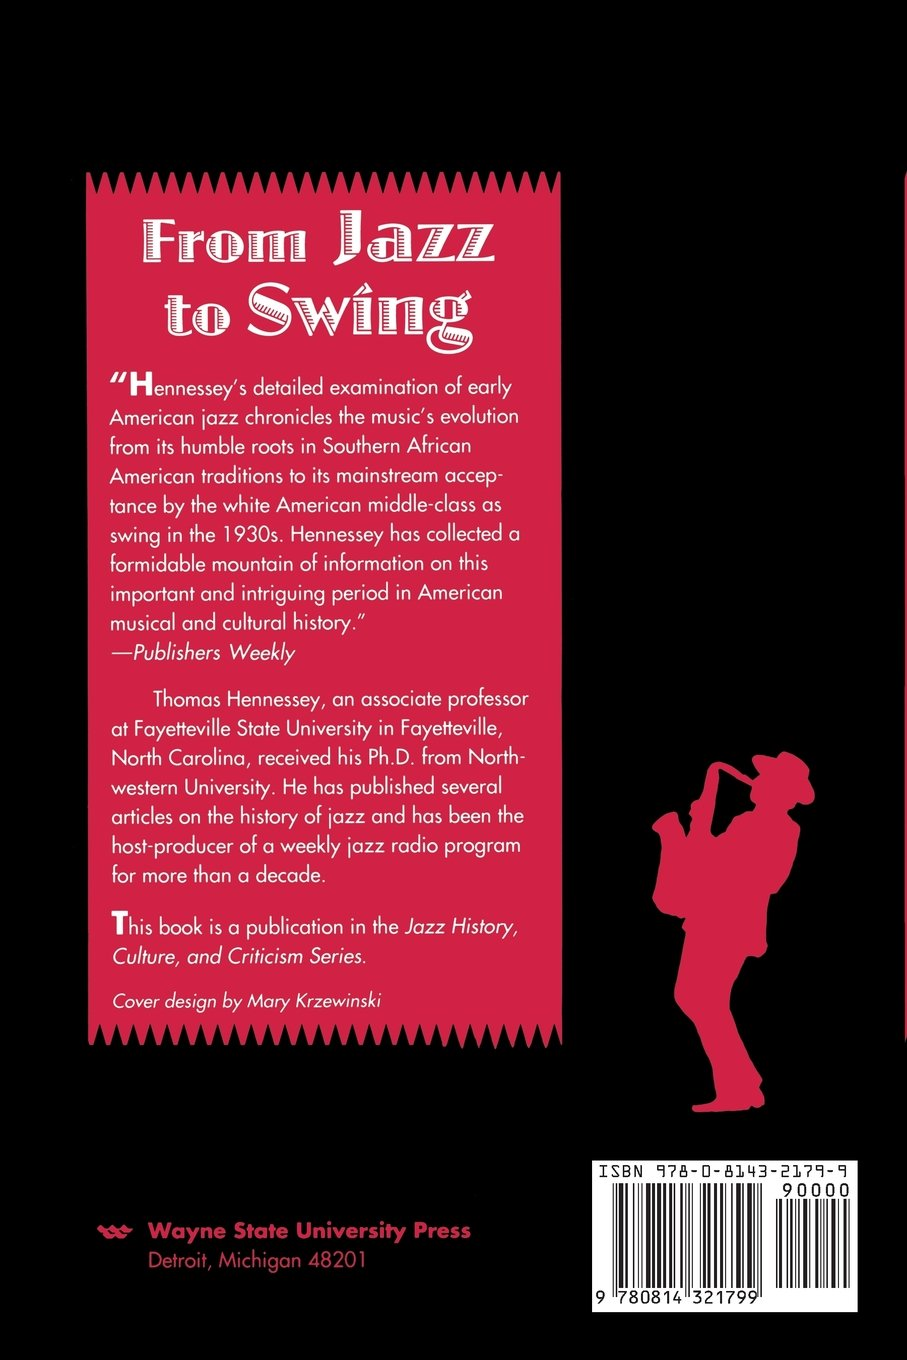 From jazz to swing african american jazz musicians and their music from jazz to swing african american jazz musicians and their music 1890 1935 jazz history culture and criticism series dr thomas j hennessey fandeluxe Images